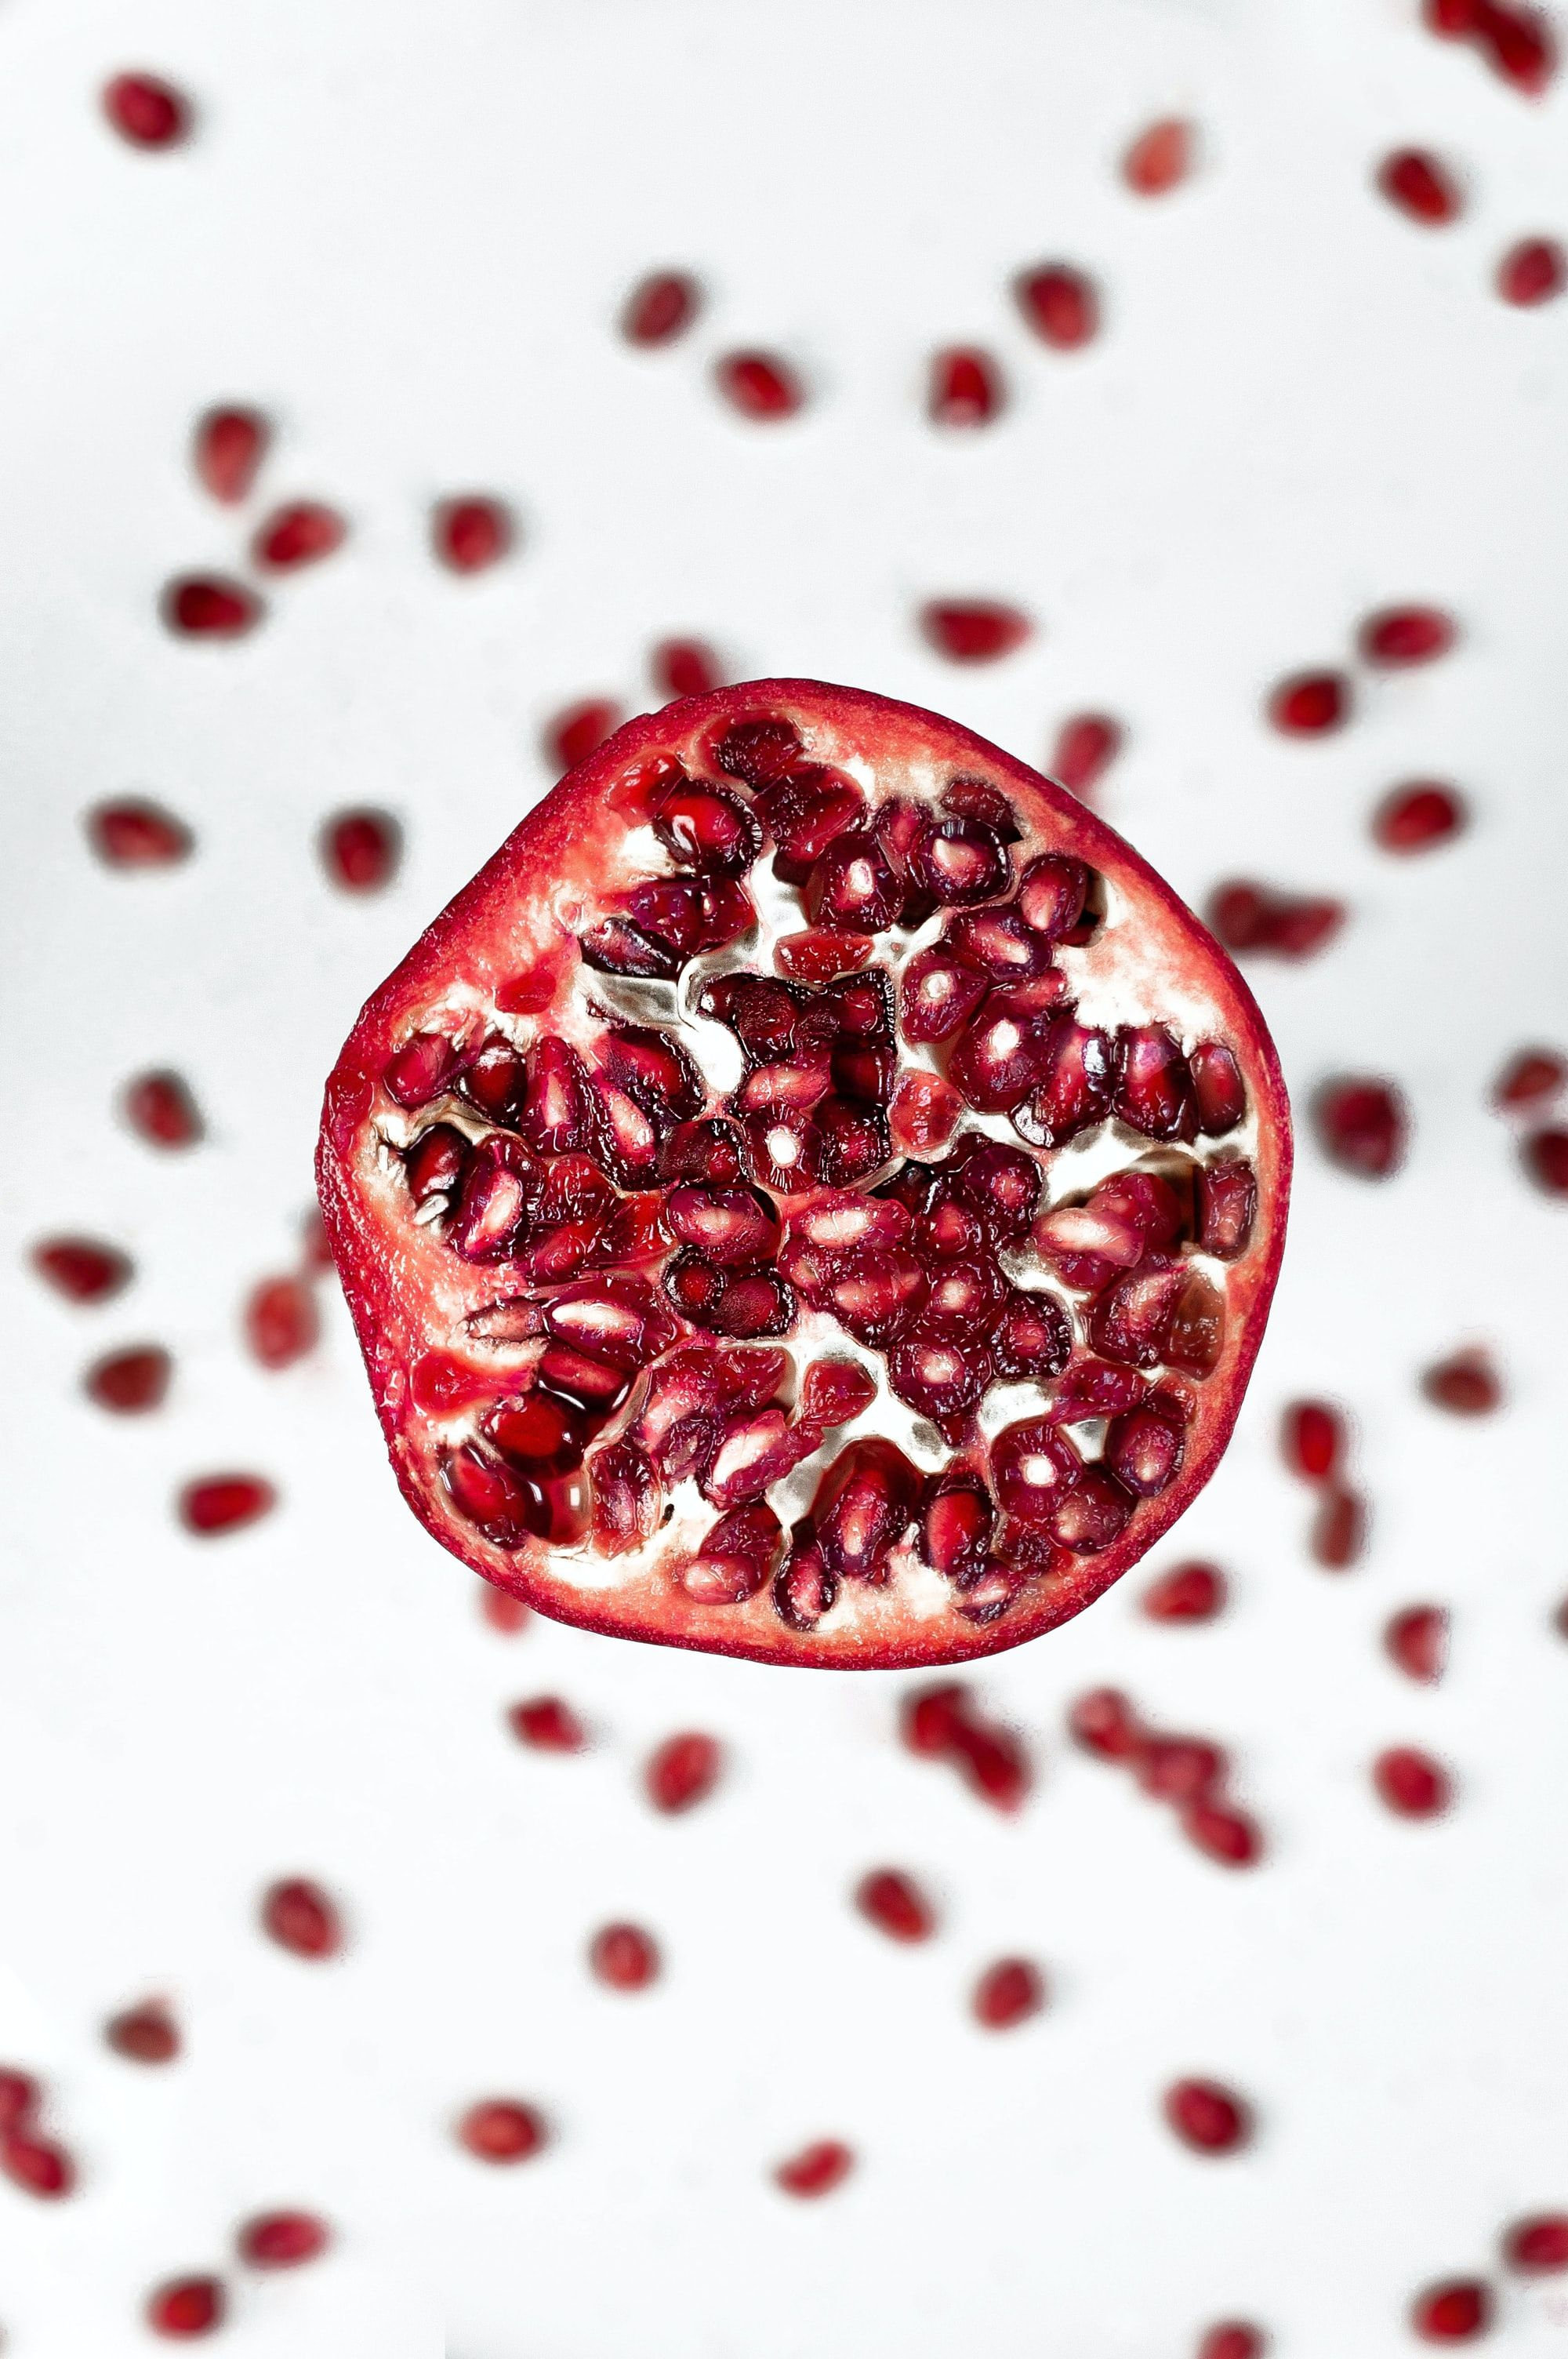 Can Dogs Eat Pomegranate Seeds?